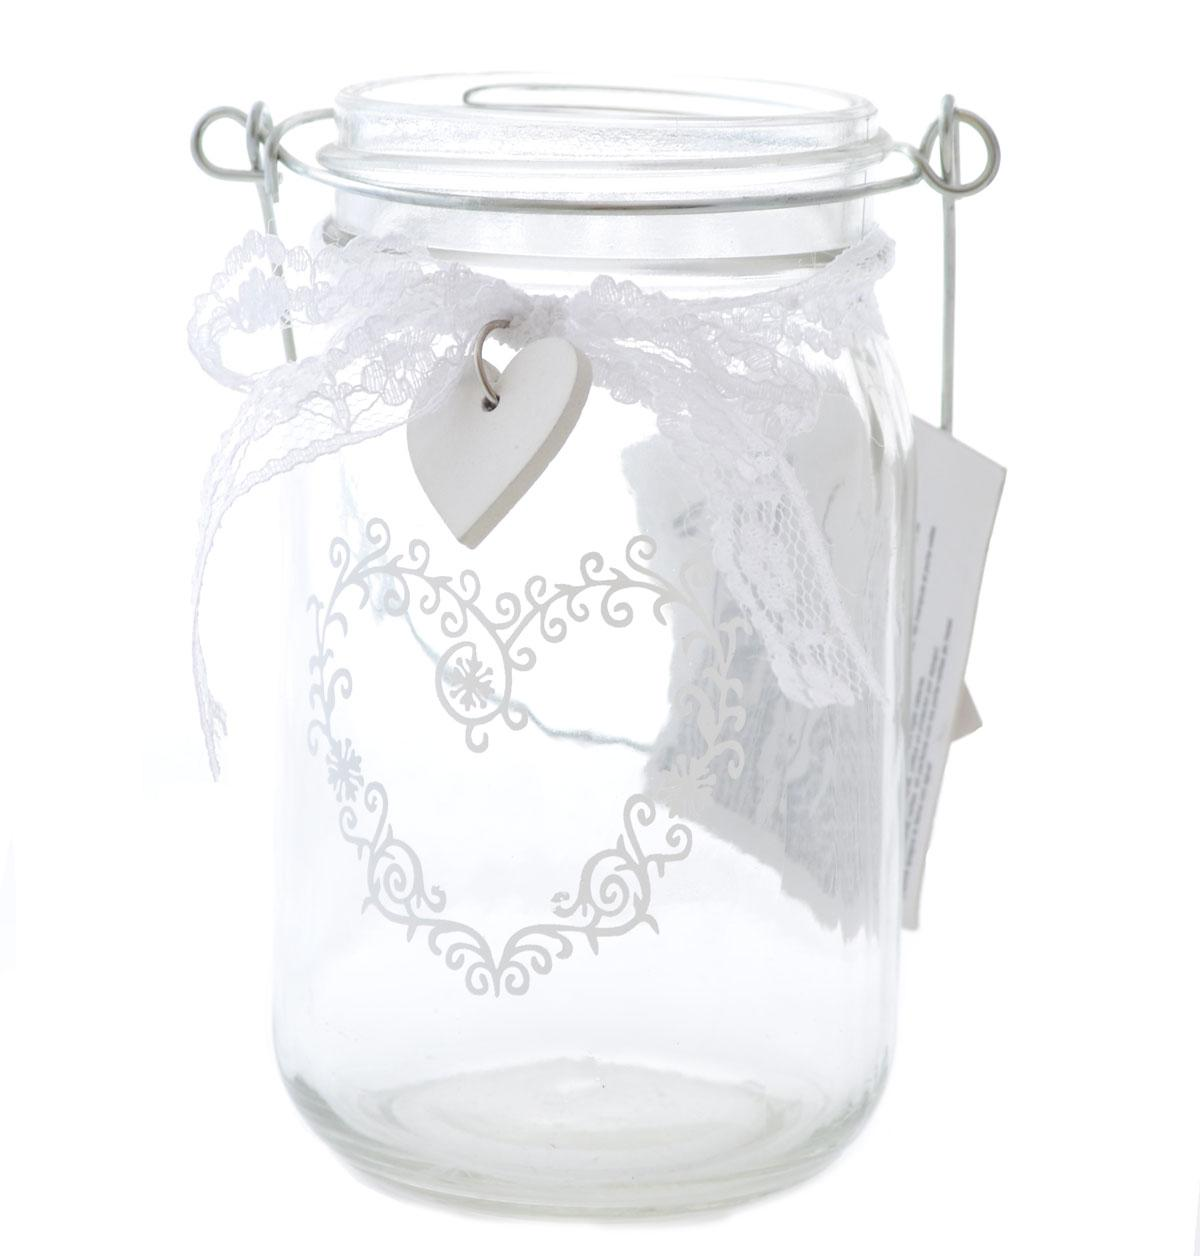 Glass Jar Candle Holder with Wire Loop & Heart